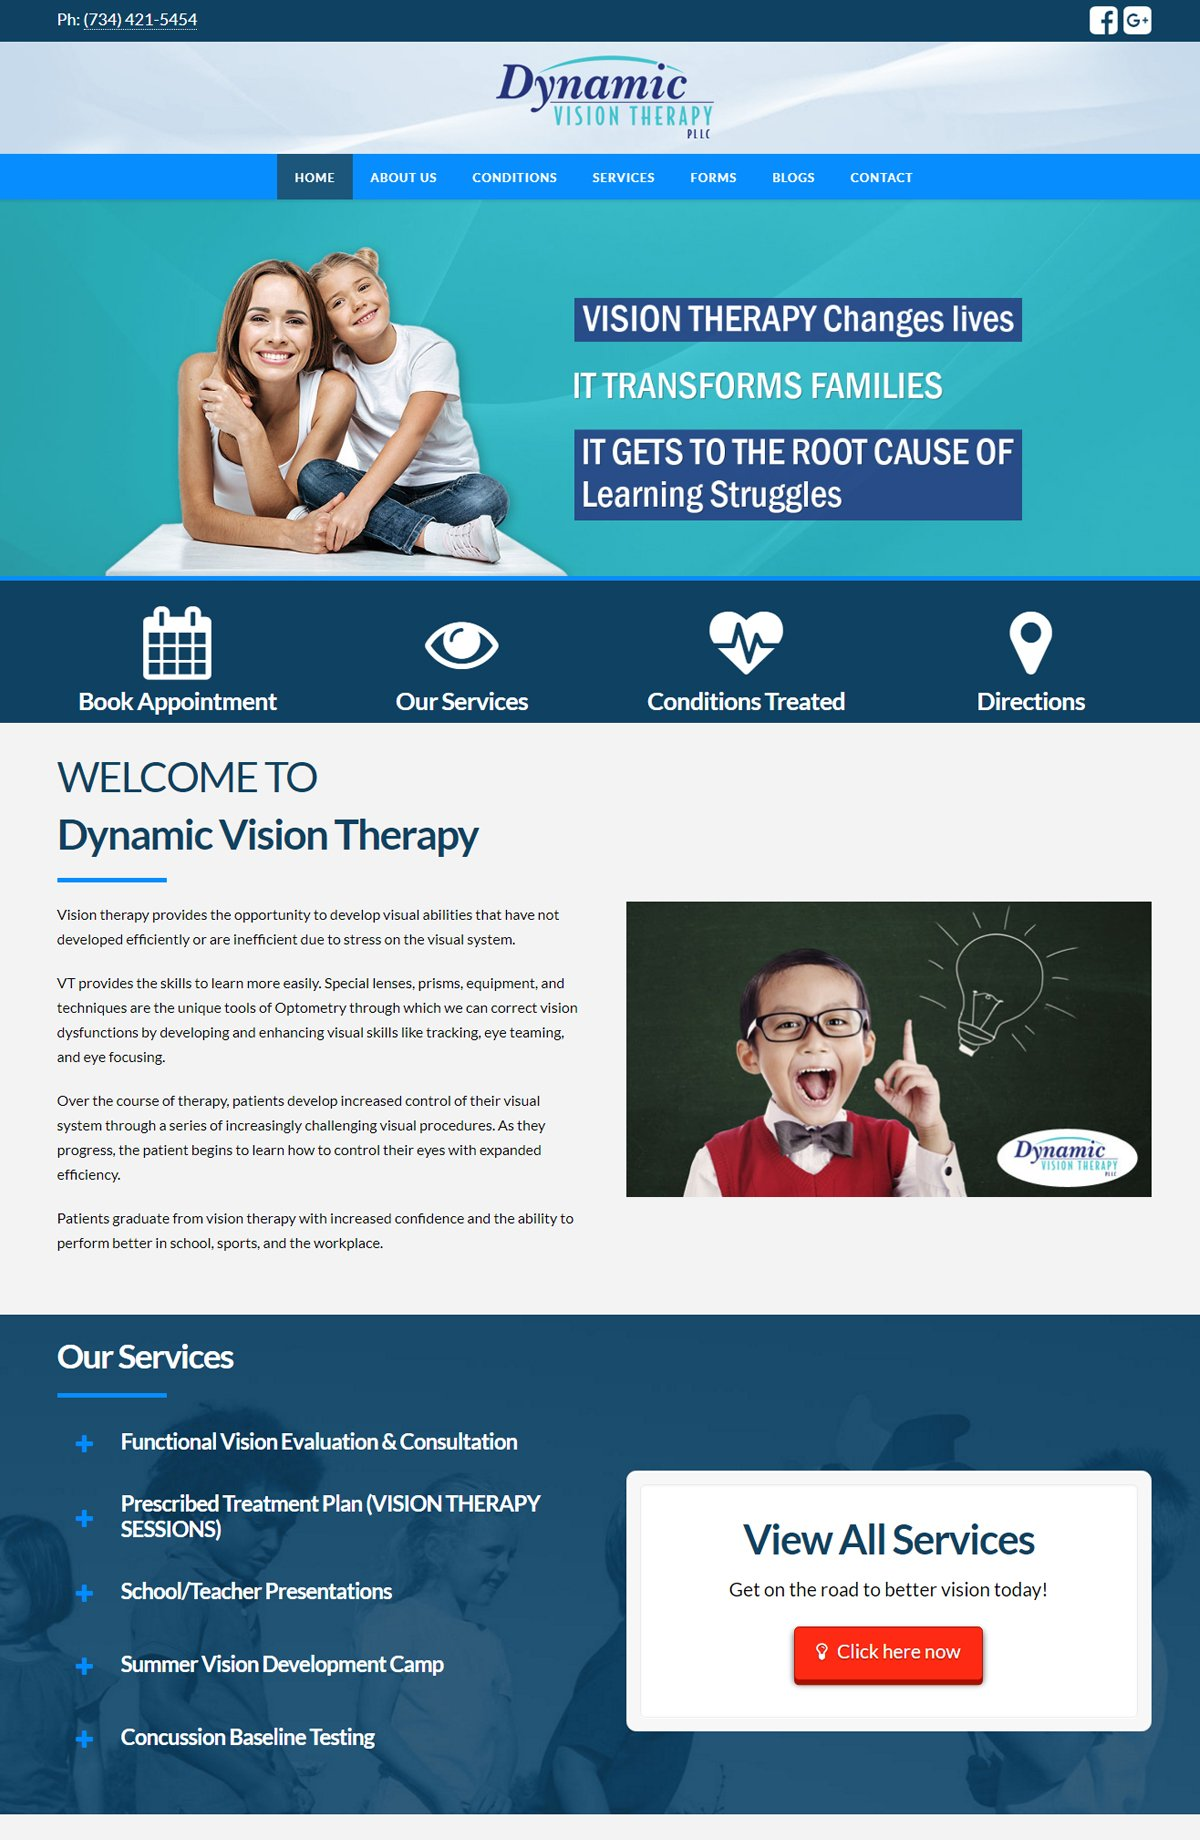 Dynamic Vision Therapy